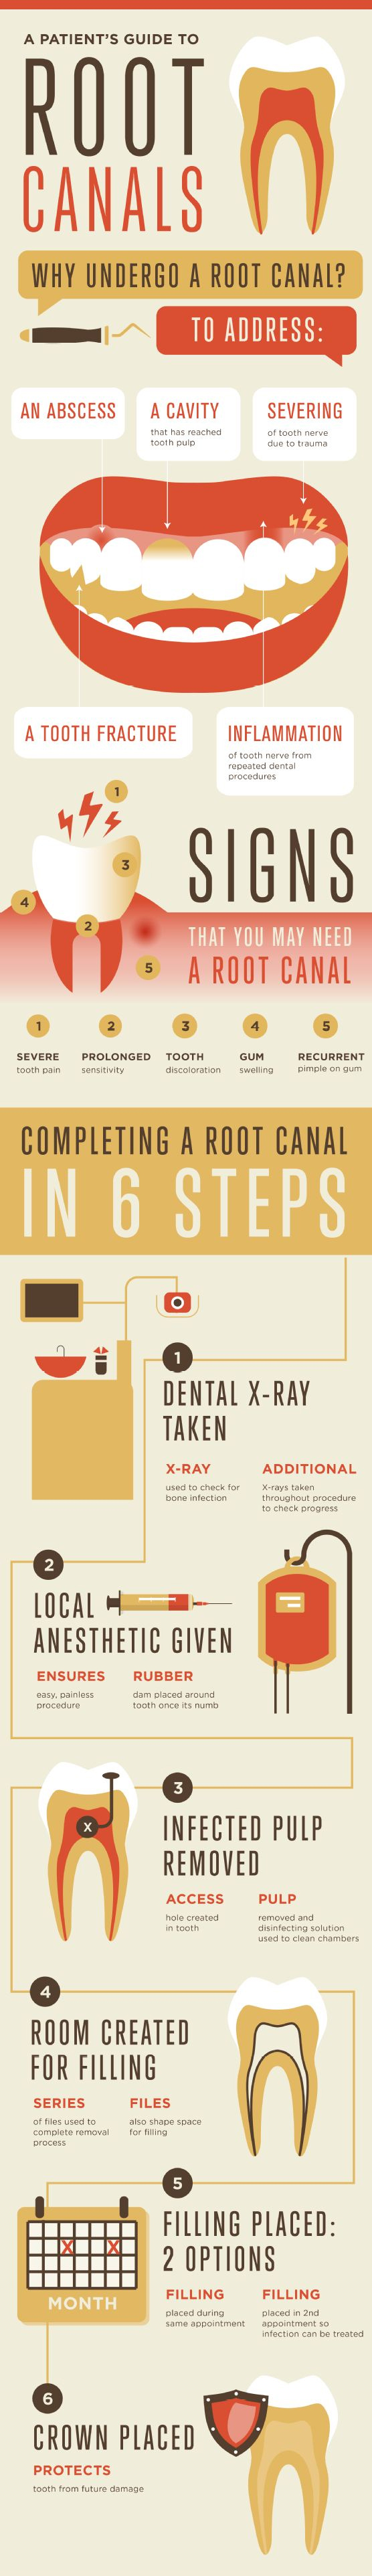 guild to root canals